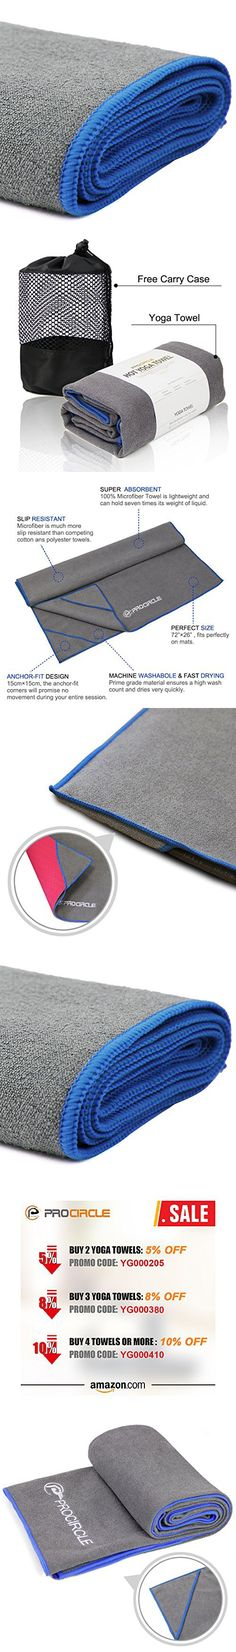 PROCIRCLE Yoga Towel - Blue - Microfiber Hot Yoga Towel, Bikram Yoga Towel, Ashtanga Yoga Towel - Super Absorbent, Non Slip, Machine Washable, Fast Drying - Free Carry Case